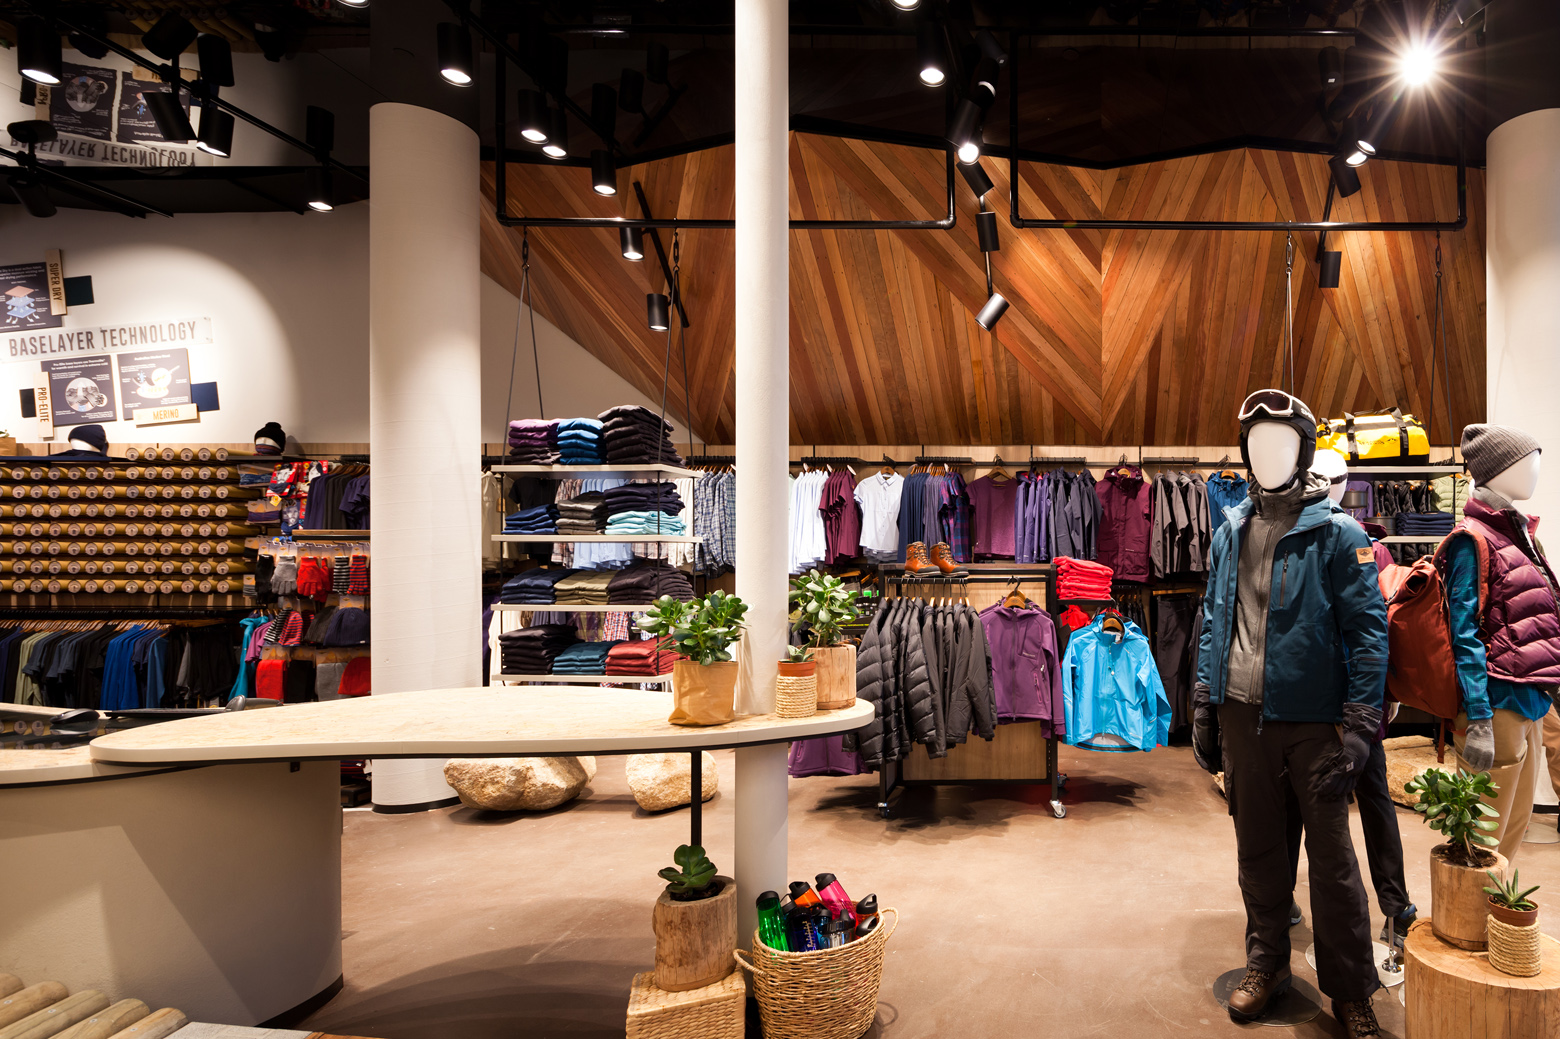 Retail Lighting Stores Sydney Retail Store Lighting Led Lighting For Retail Stores